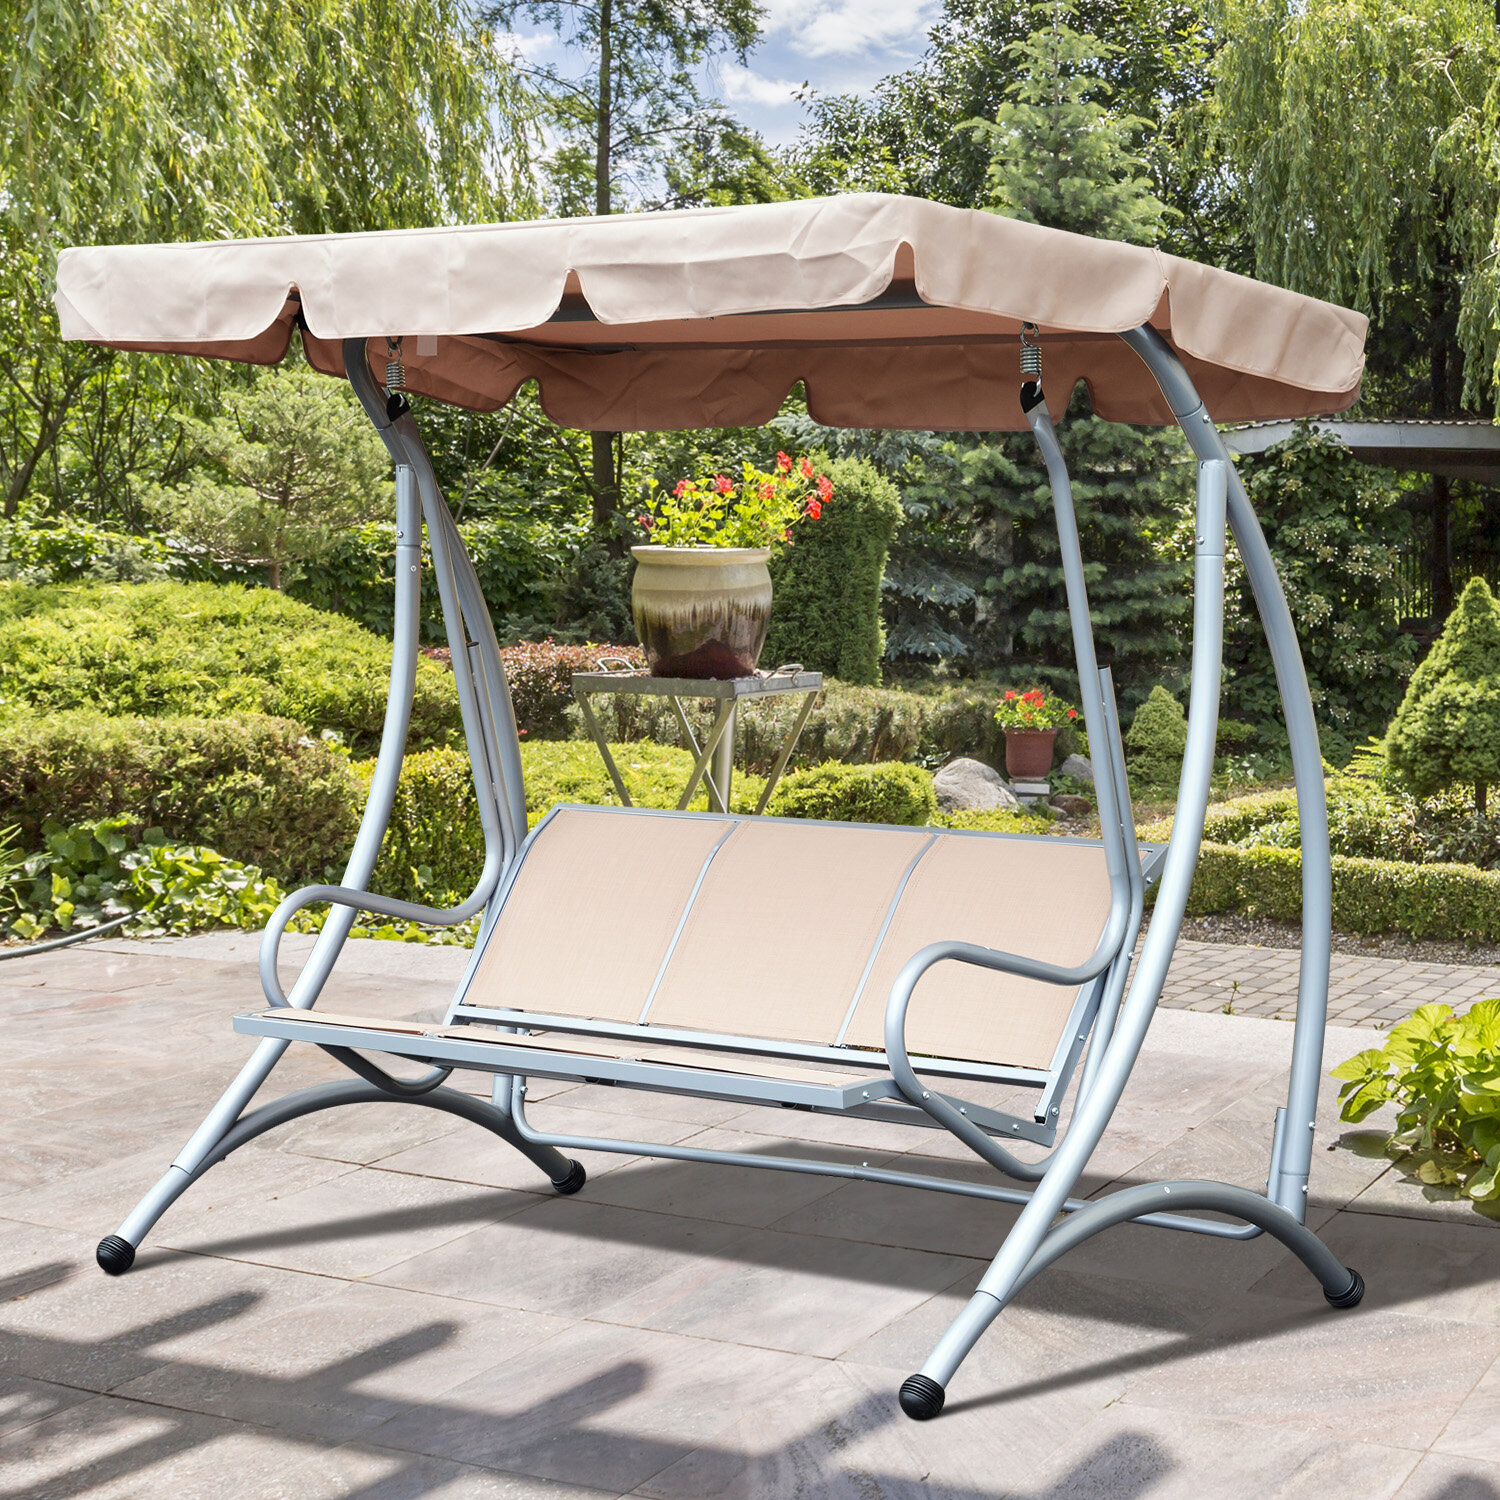 Red Barrel Studio Rosalie Porch Swing With Stand & Reviews With Regard To Outdoor Pvc Coated Polyester Porch Swings With Stand (View 7 of 25)